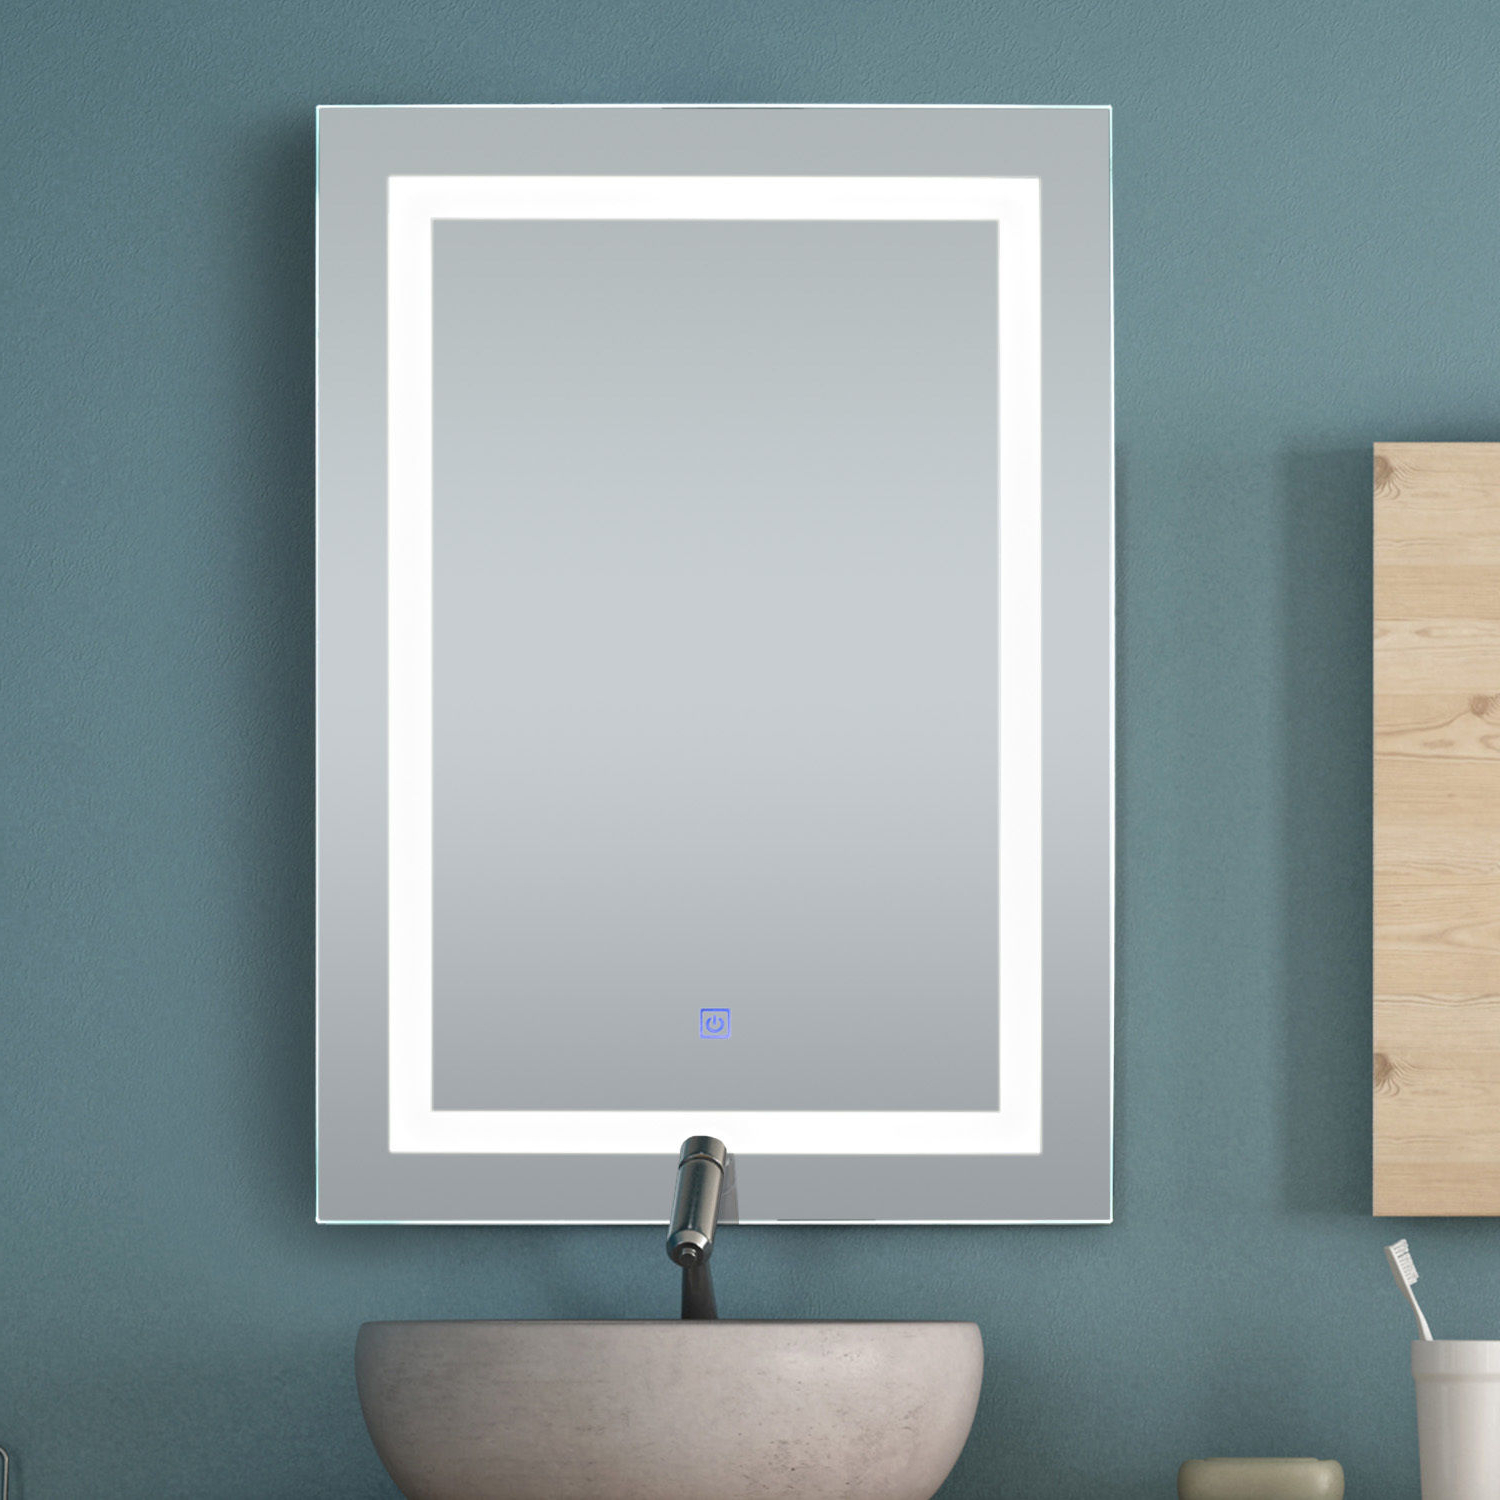 "Wall Mirrors With Light Throughout Fashionable Details About Homcom 32"" Led Bathroom Wall Mirrors With Illuminated Light Makeup Vanity Mirror (View 18 of 20)"